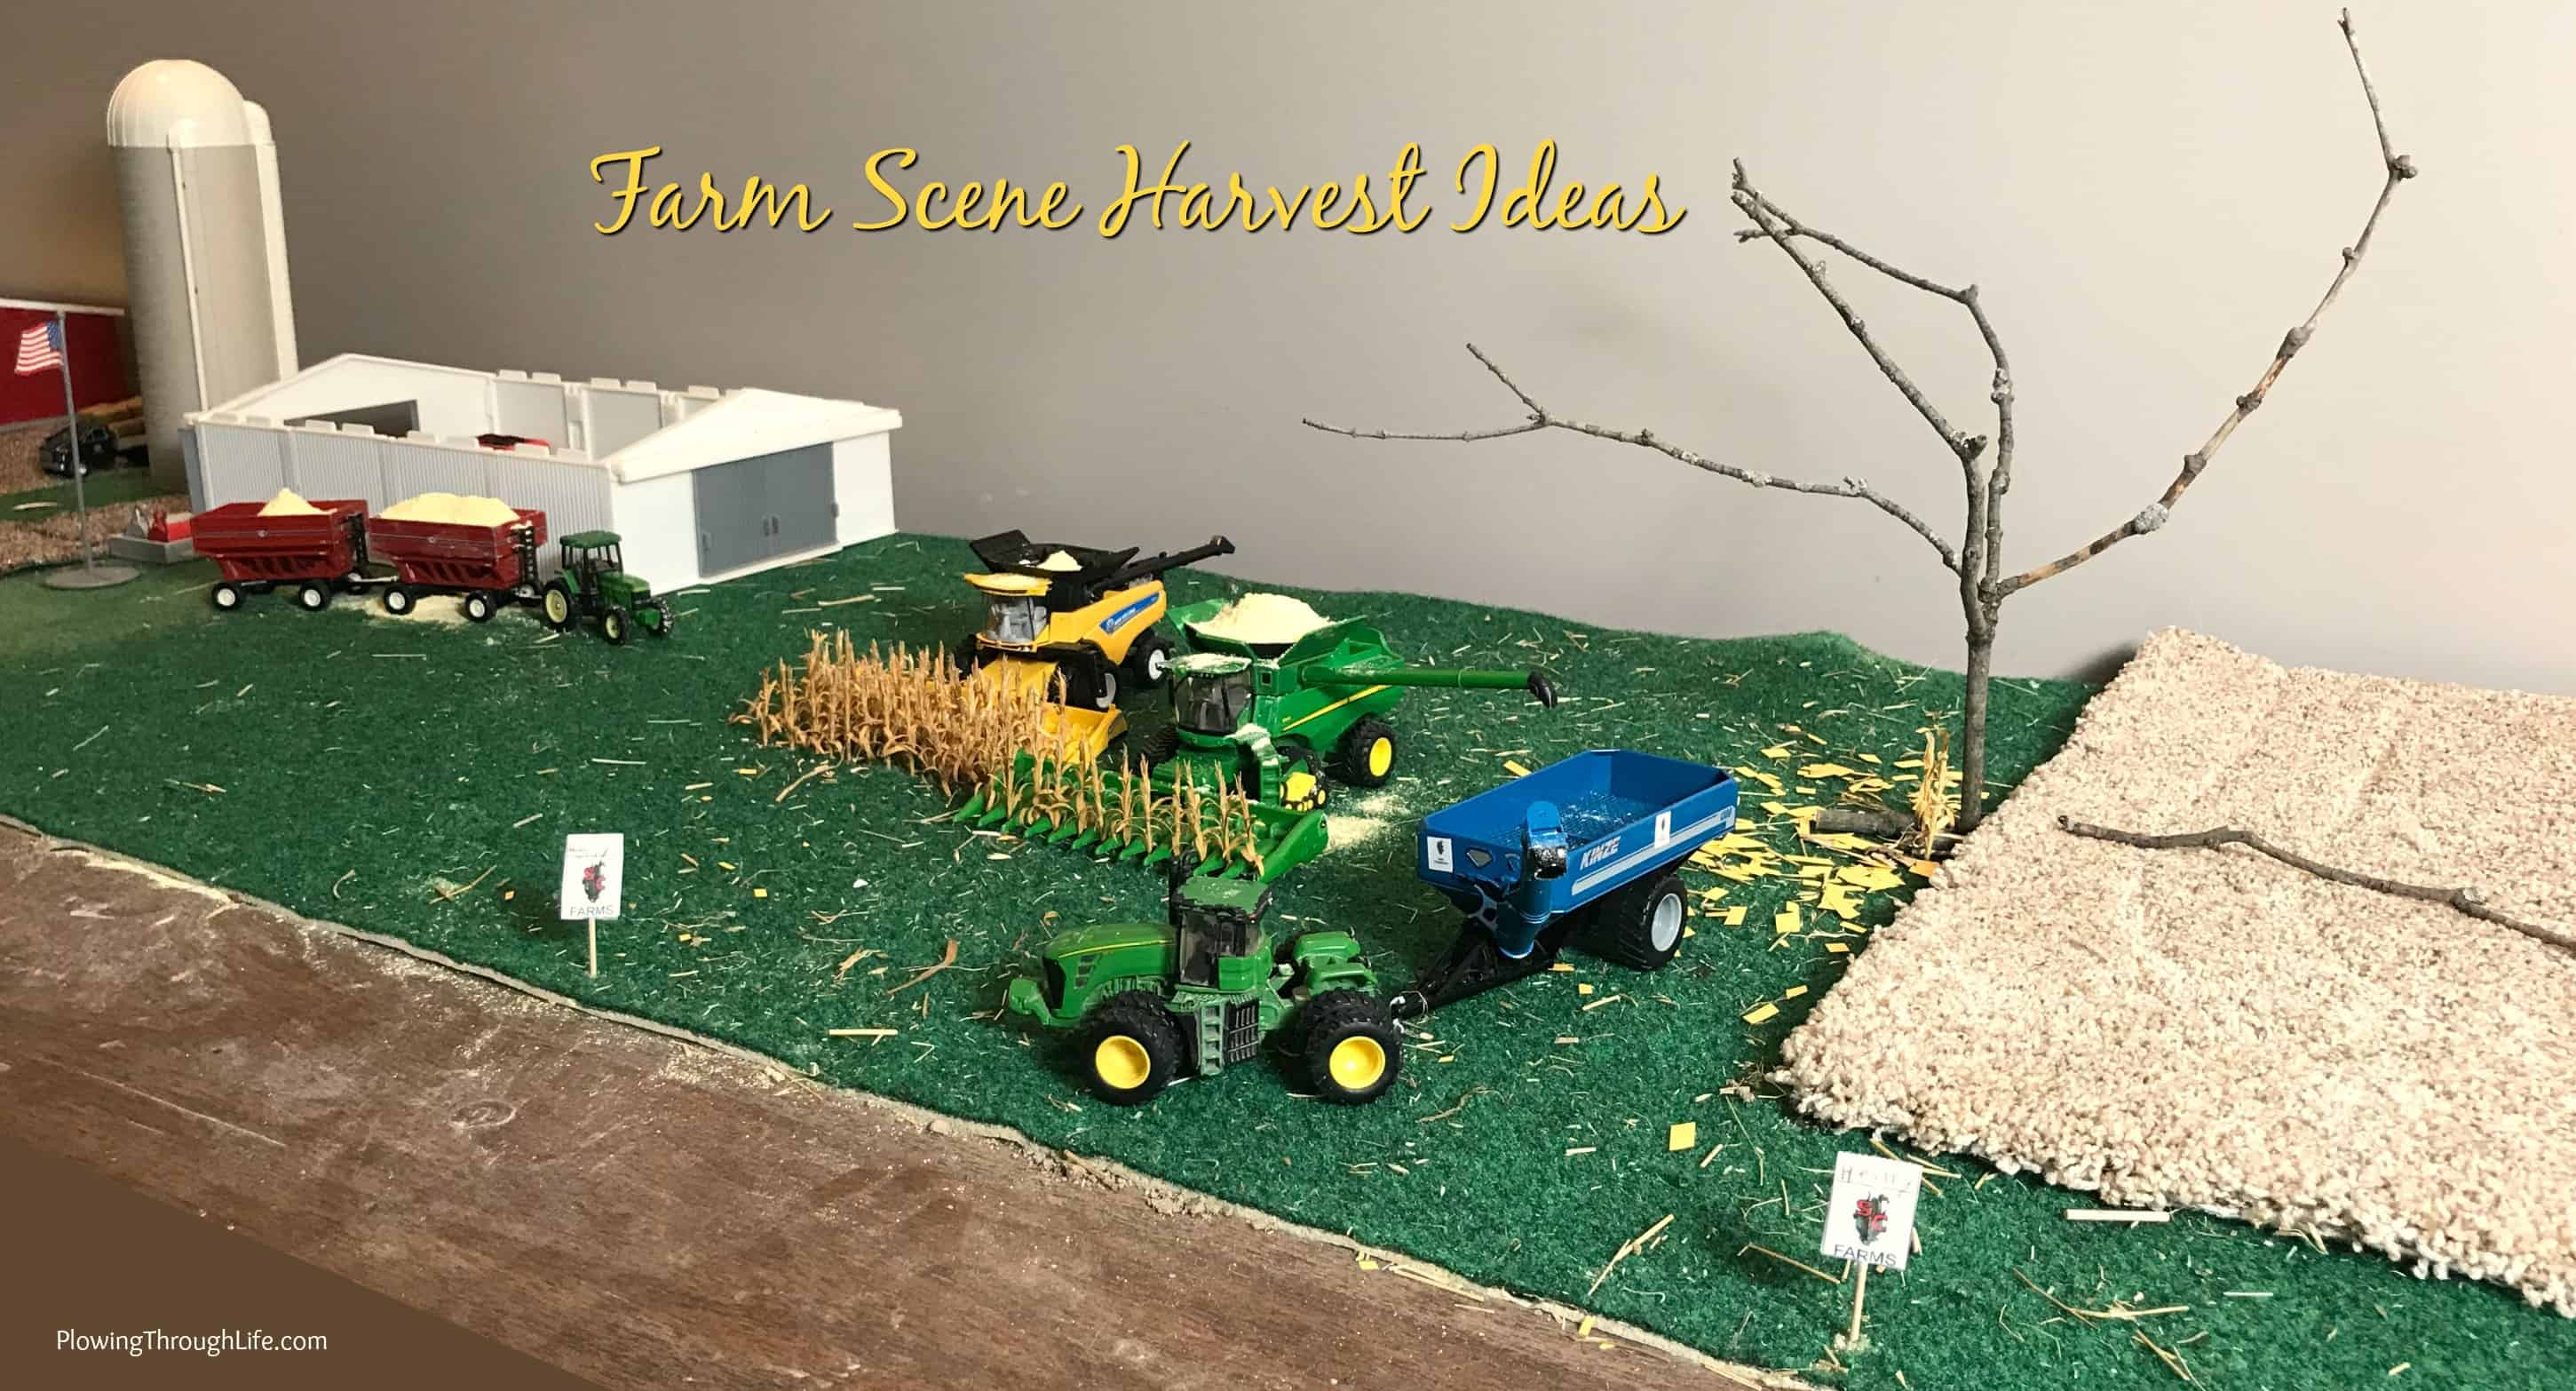 toy farm scene harvest ideas